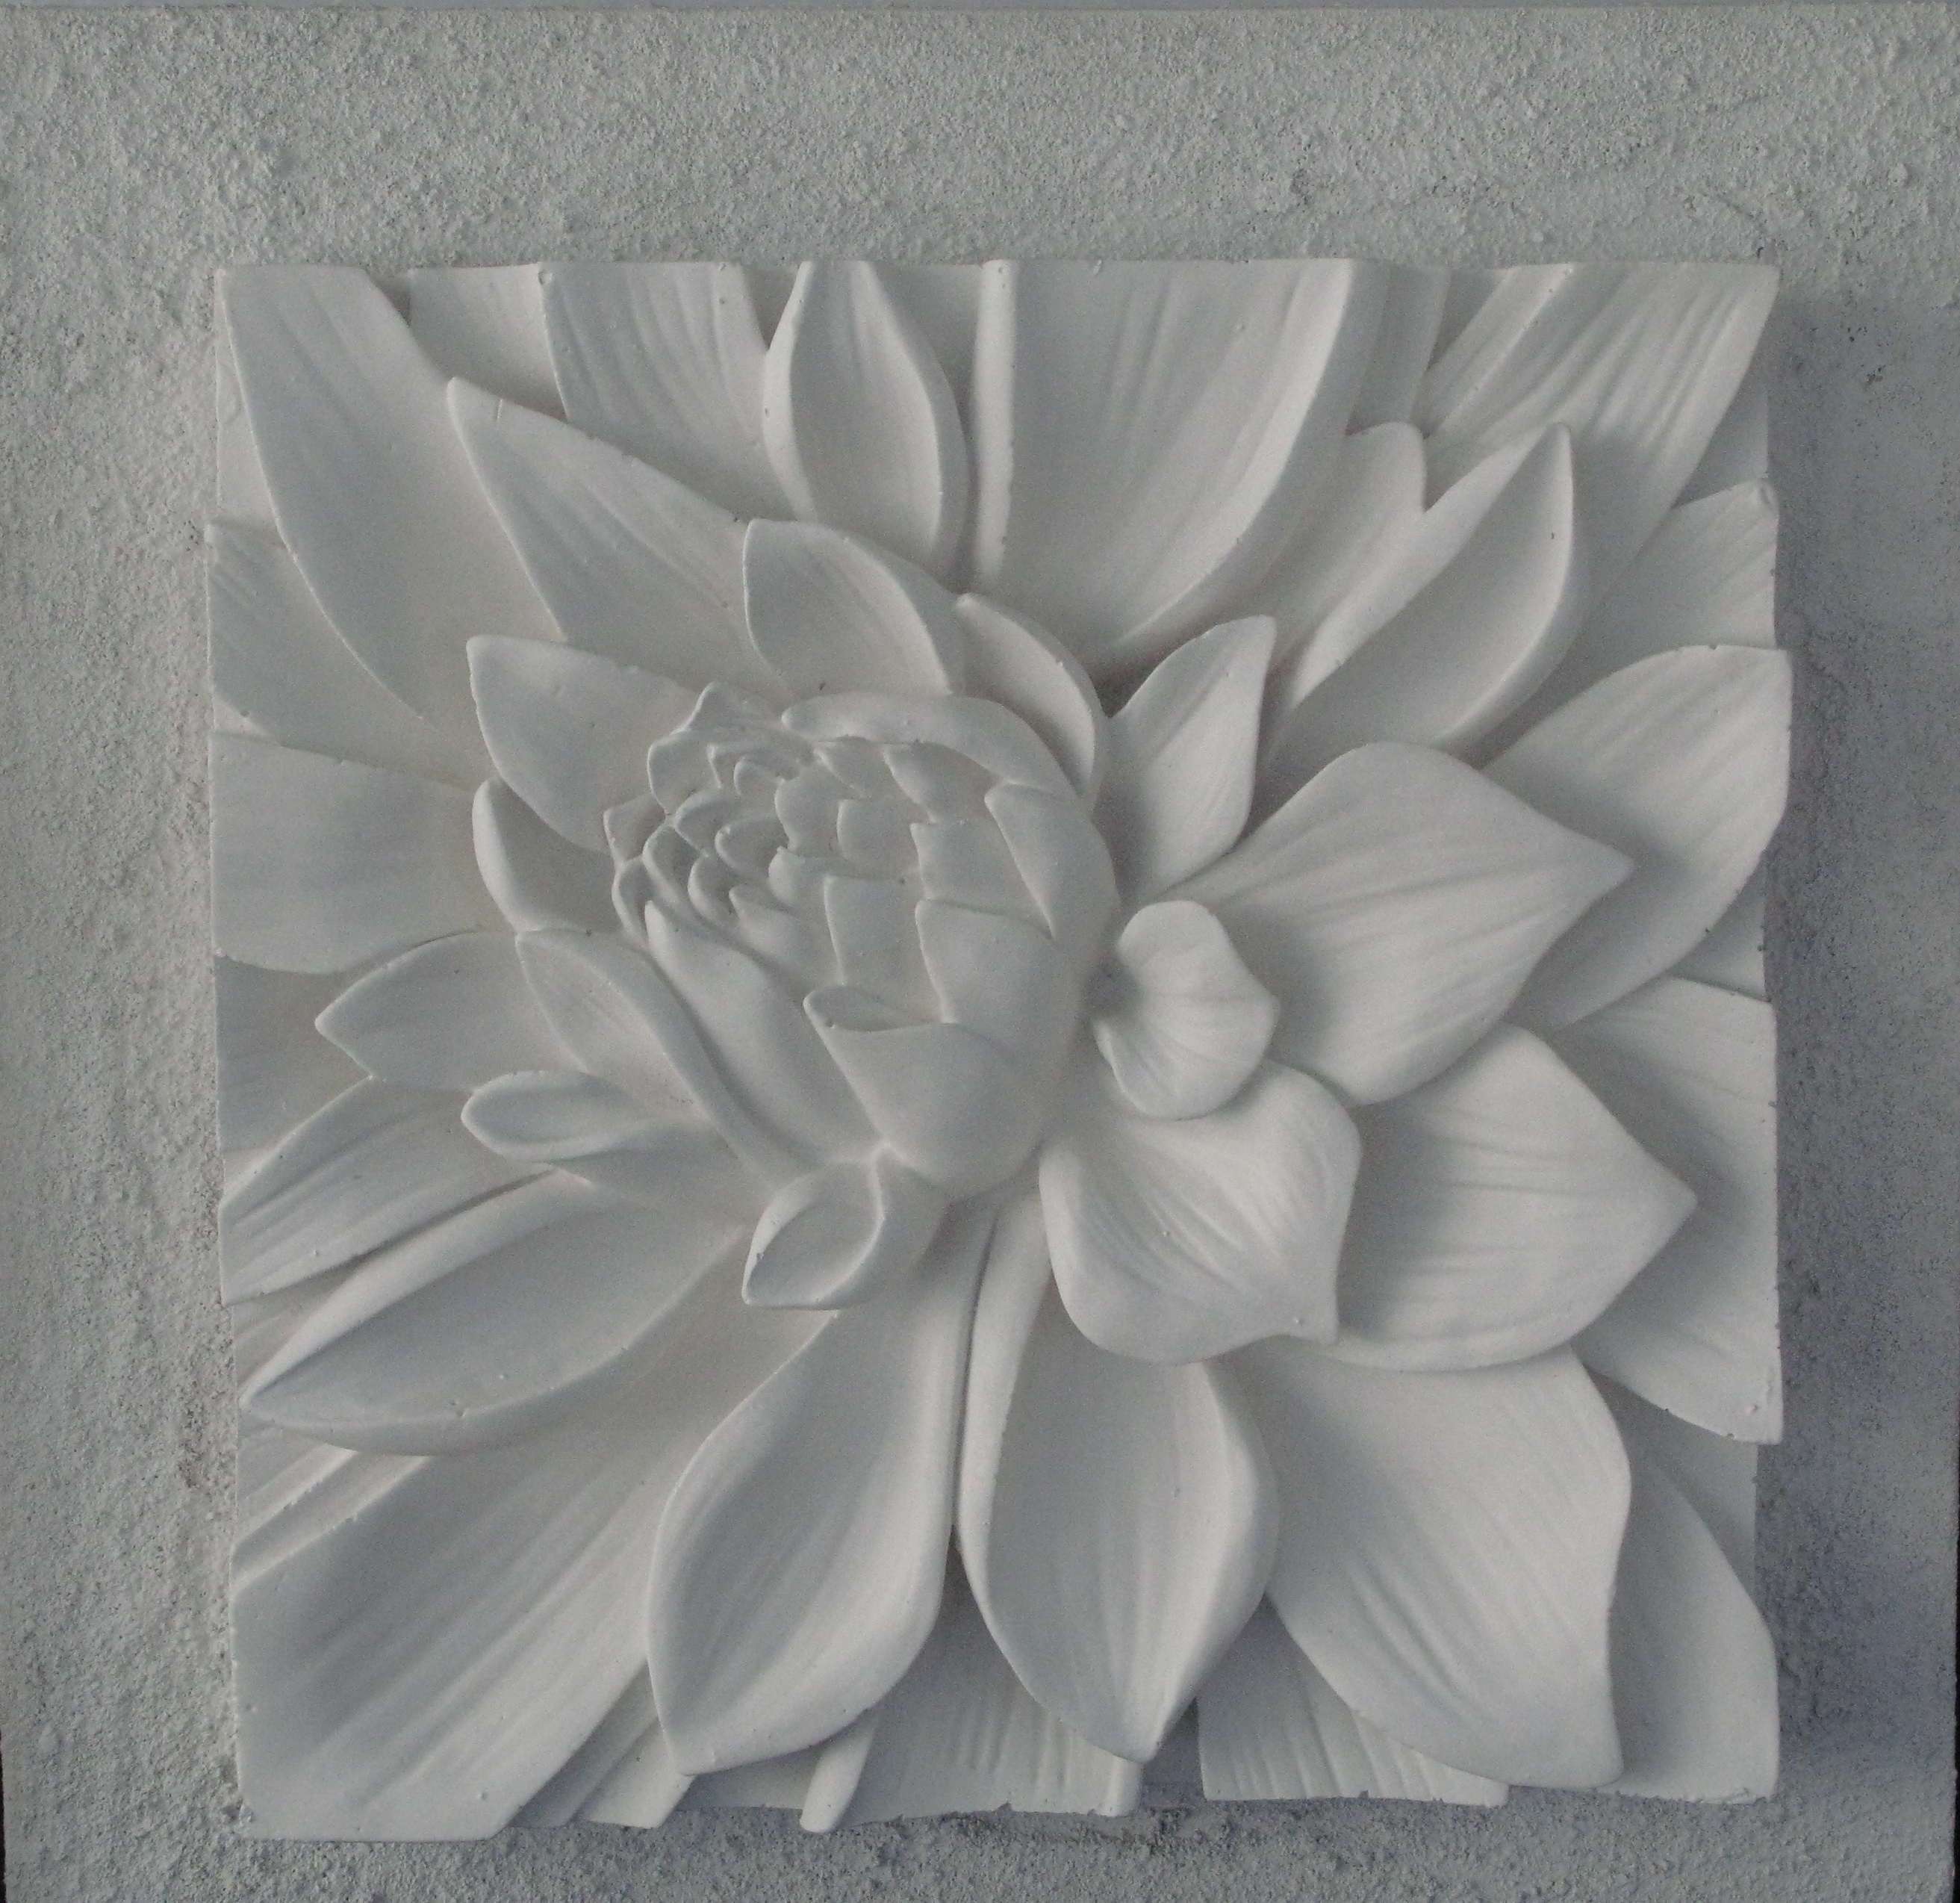 Plaster On Canvas 3d Art With Textured Background (View 10 of 15)